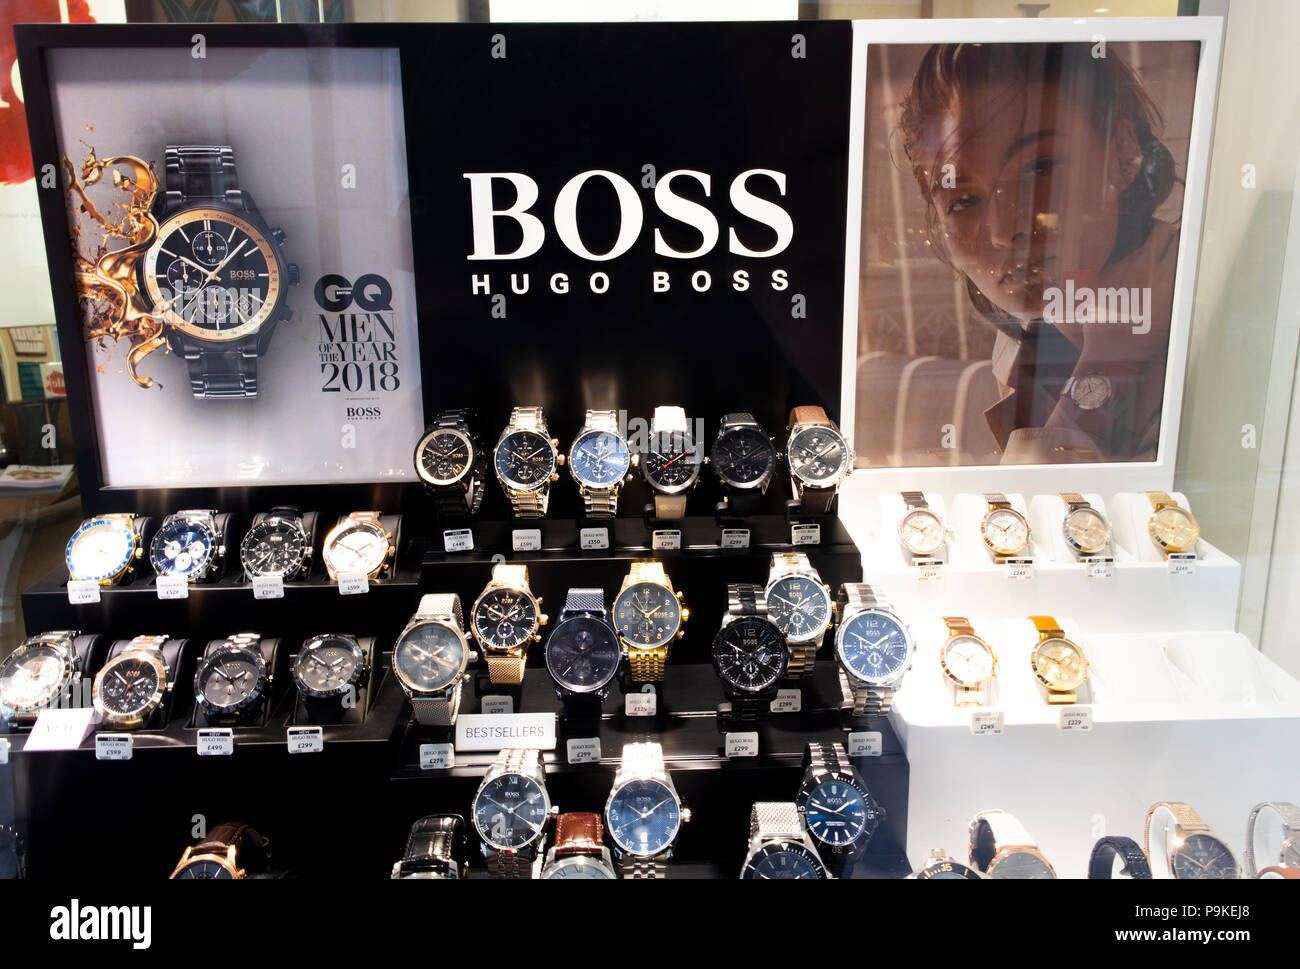 d1c84b114 Hugo Boss watch display in jewellers shop window, company founded in 1924  by Hugo Boss and is headquartered in Metzingen, Germany